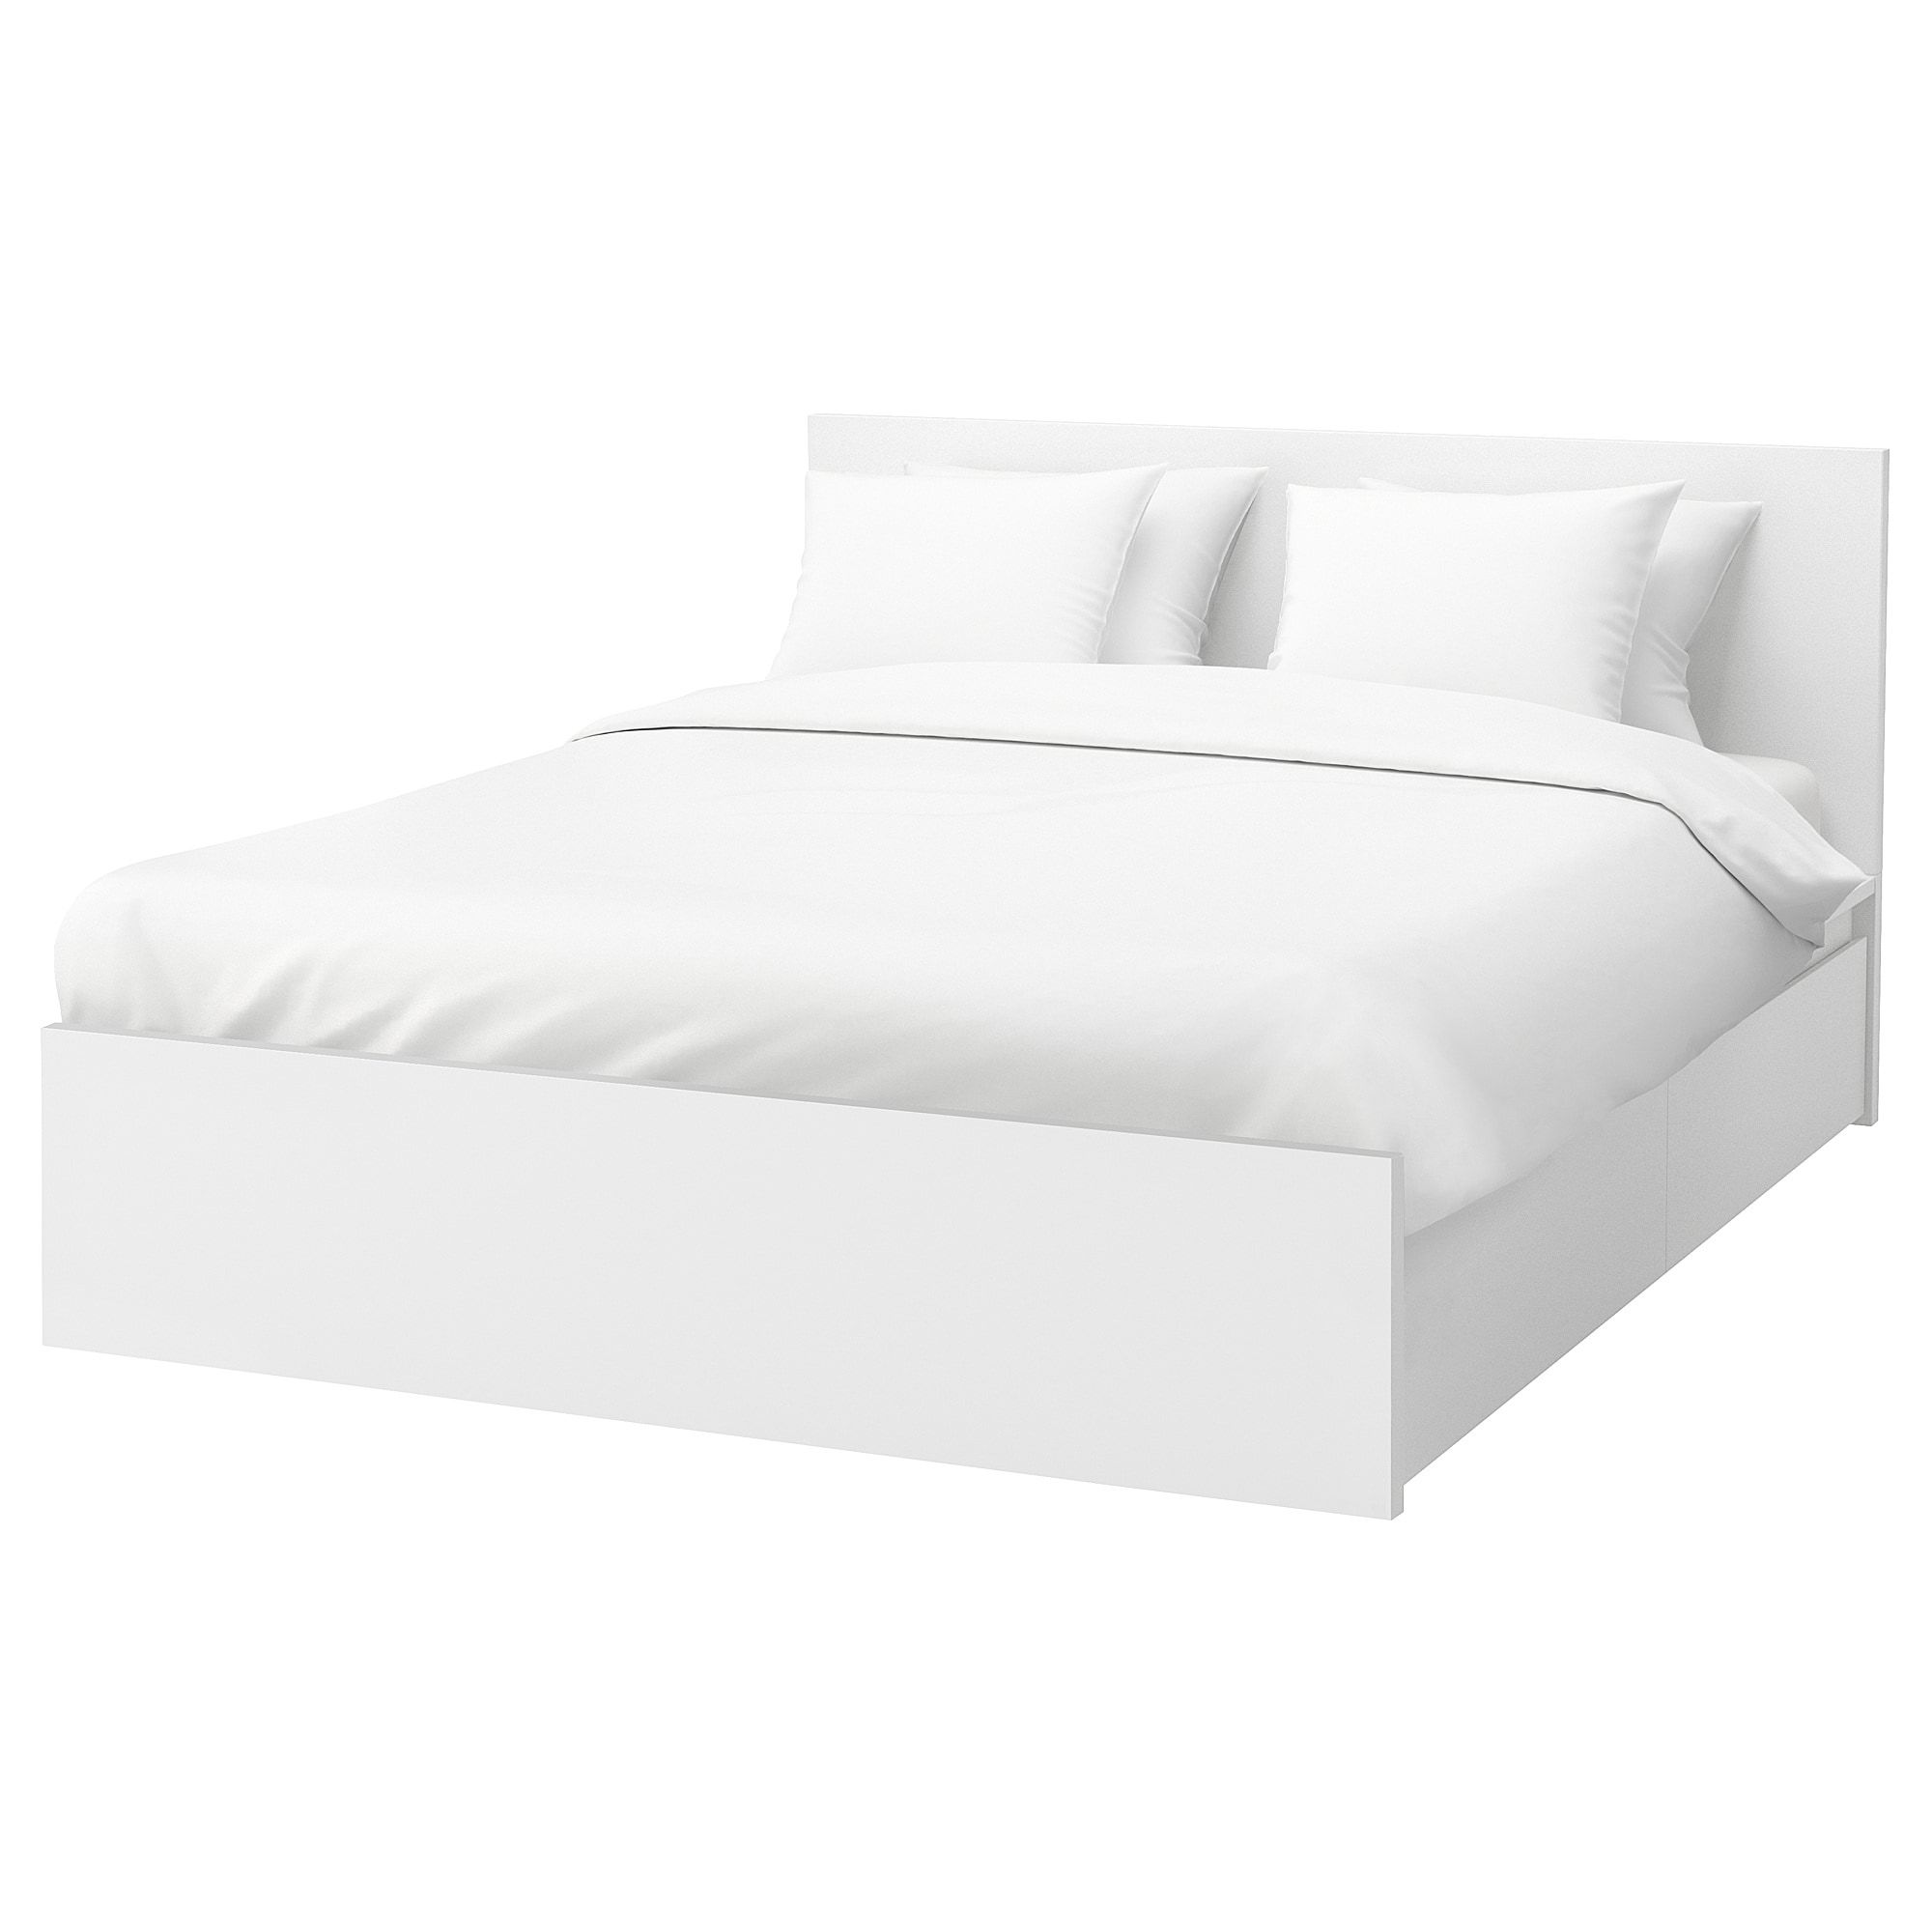 Malm High Bed Frame 4 Storage Boxes White Luroy Queen Malm